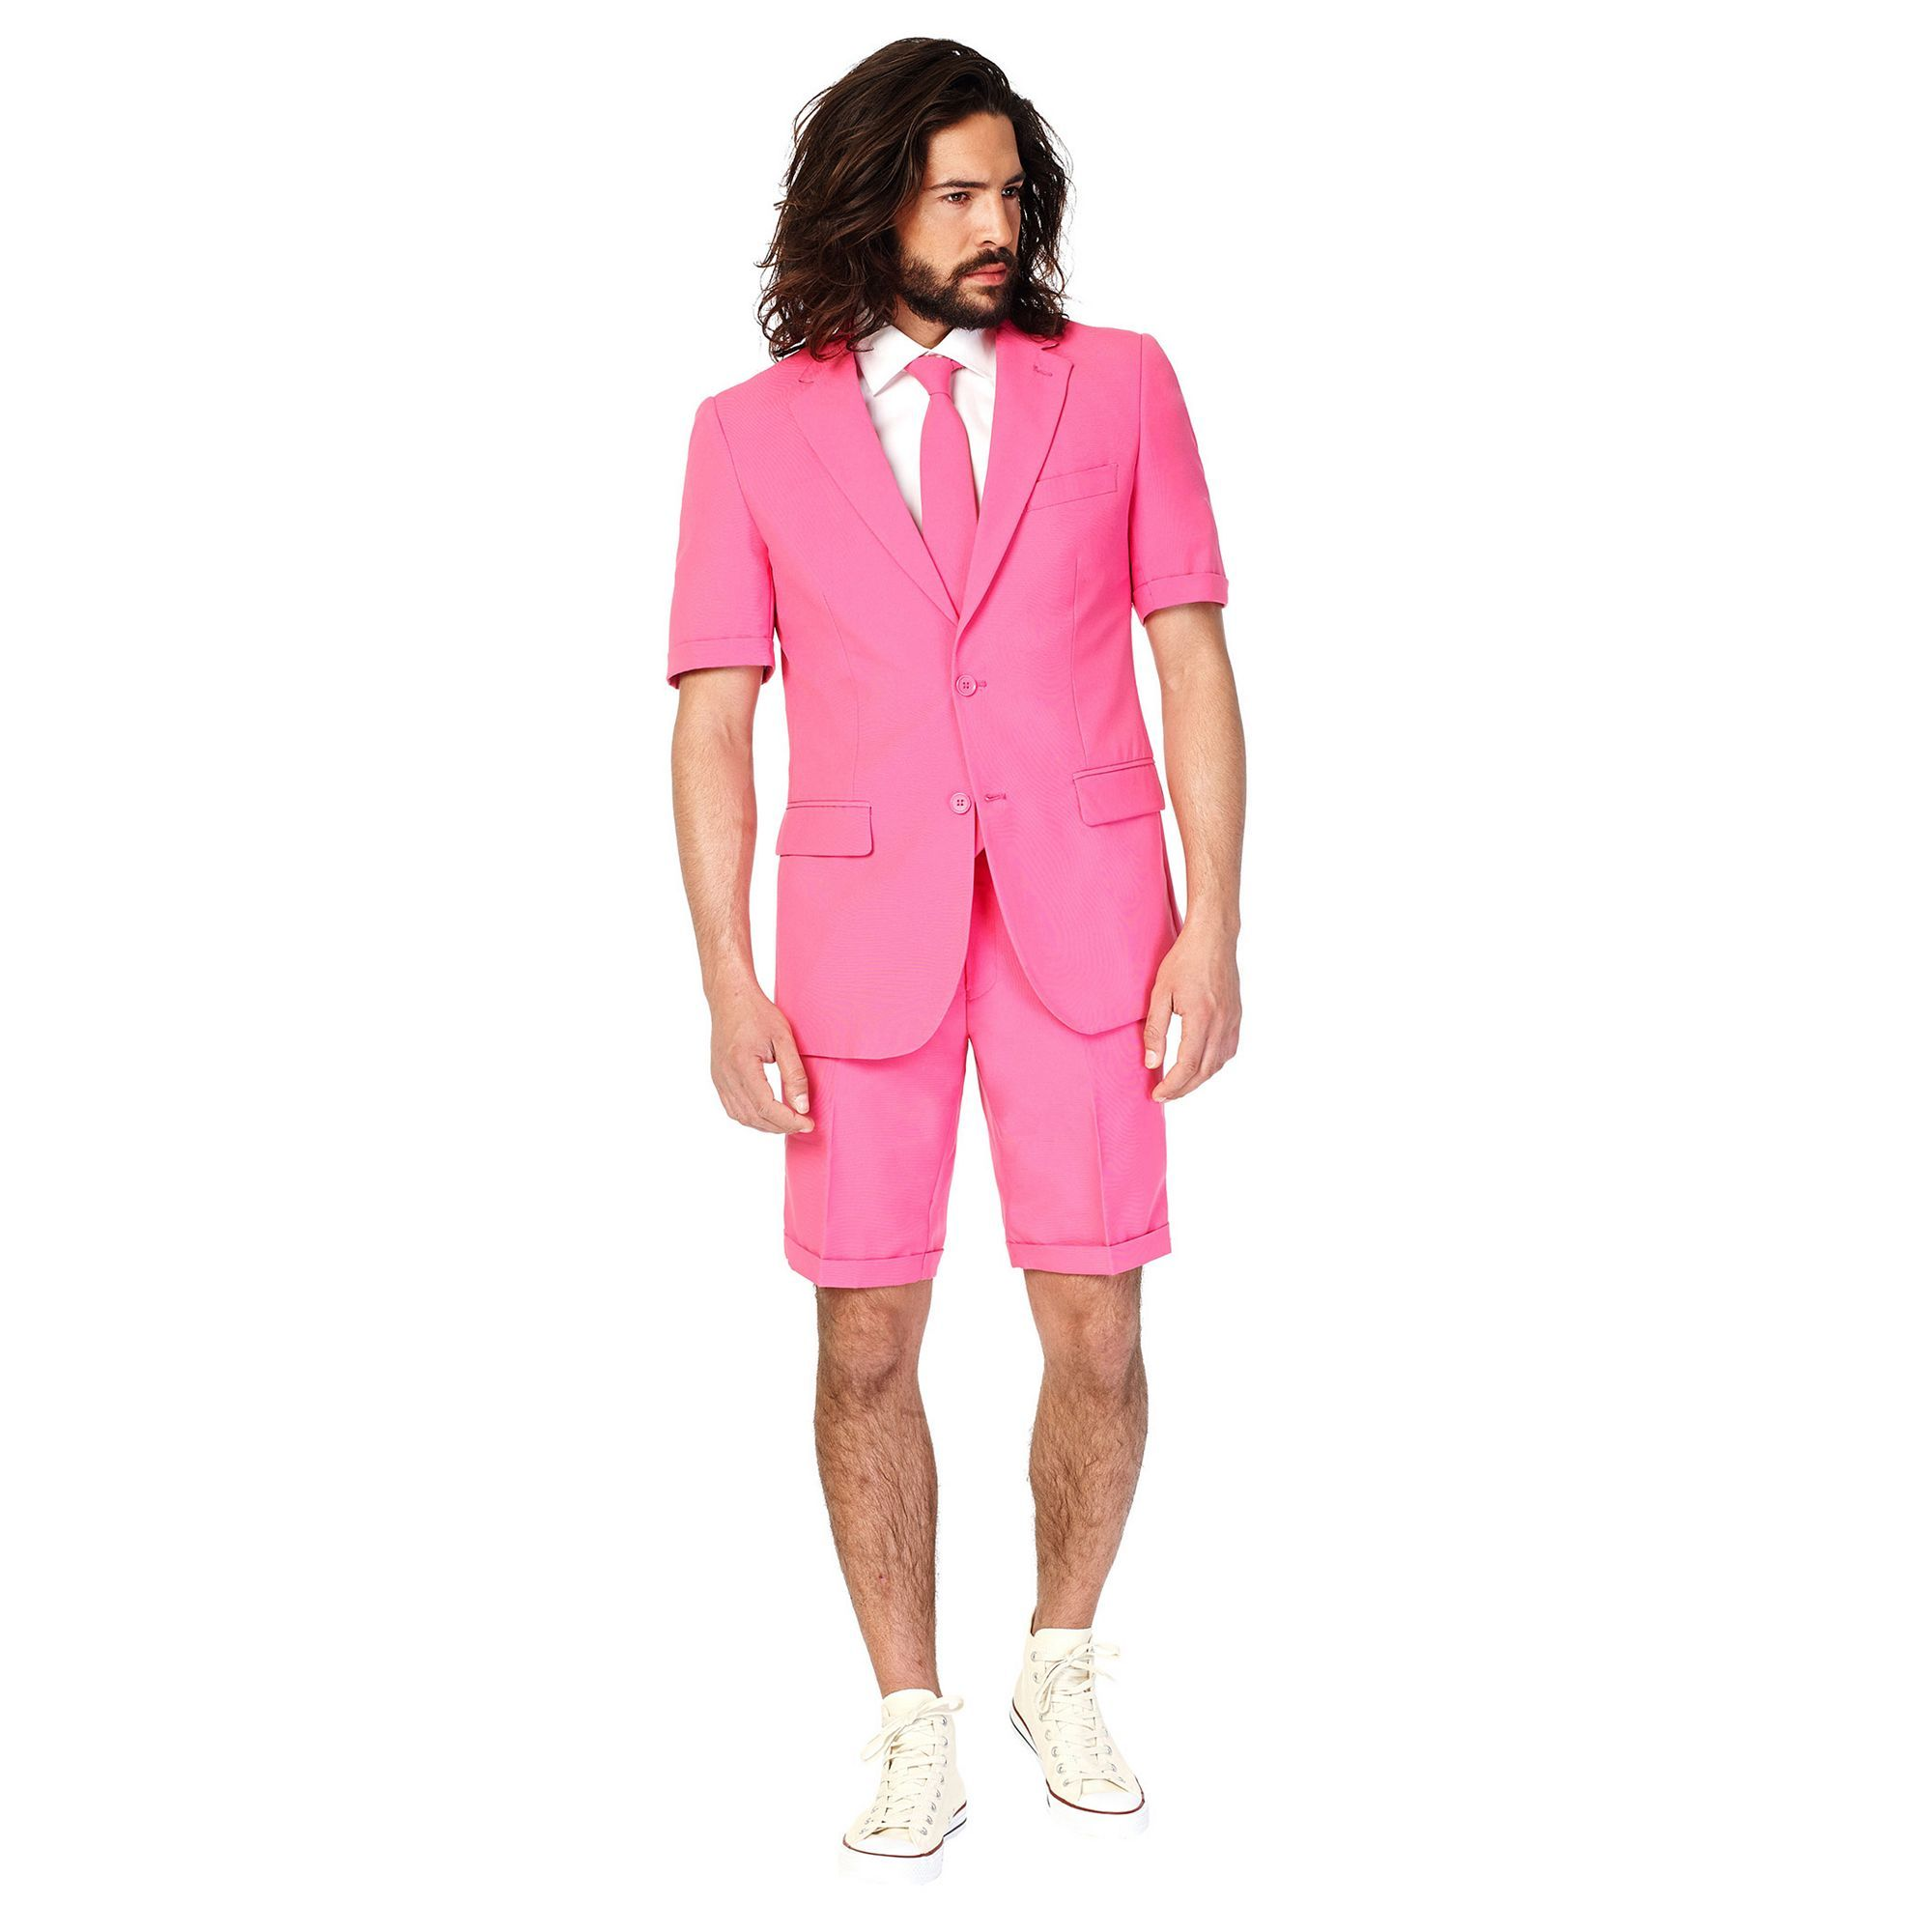 Opposuits Men\'s OppoSuits Slim-Fit Mr. Pink Suit & Tie Set